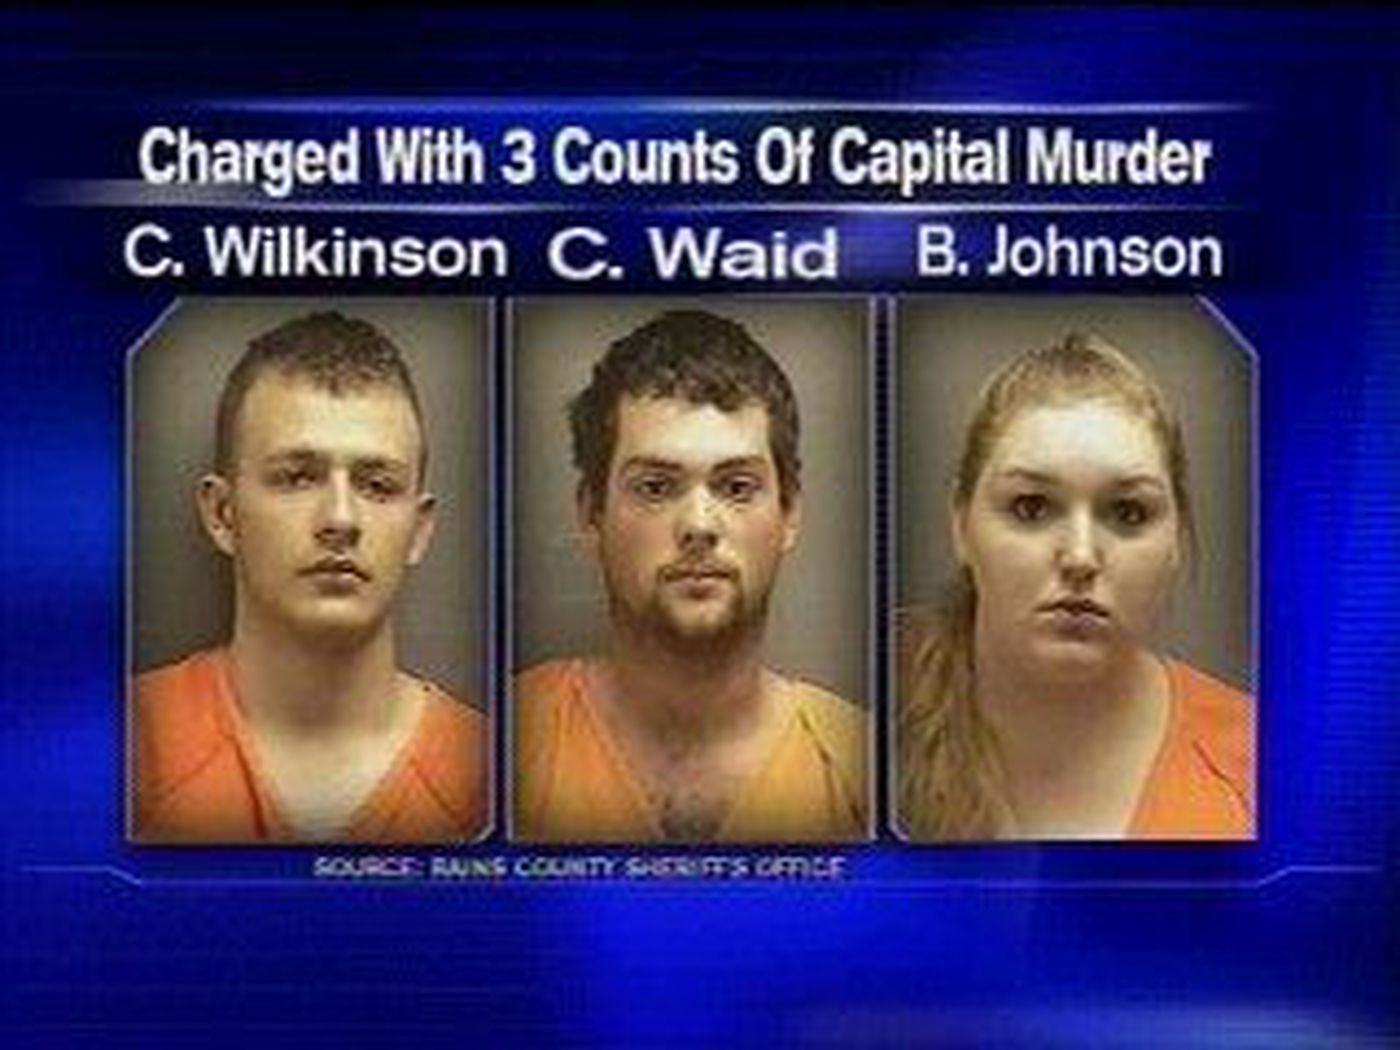 Brutal Slaying Of Family Daughter Arrested Wilkinson and waid stabbed and shot the family then burned. brutal slaying of family daughter arrested